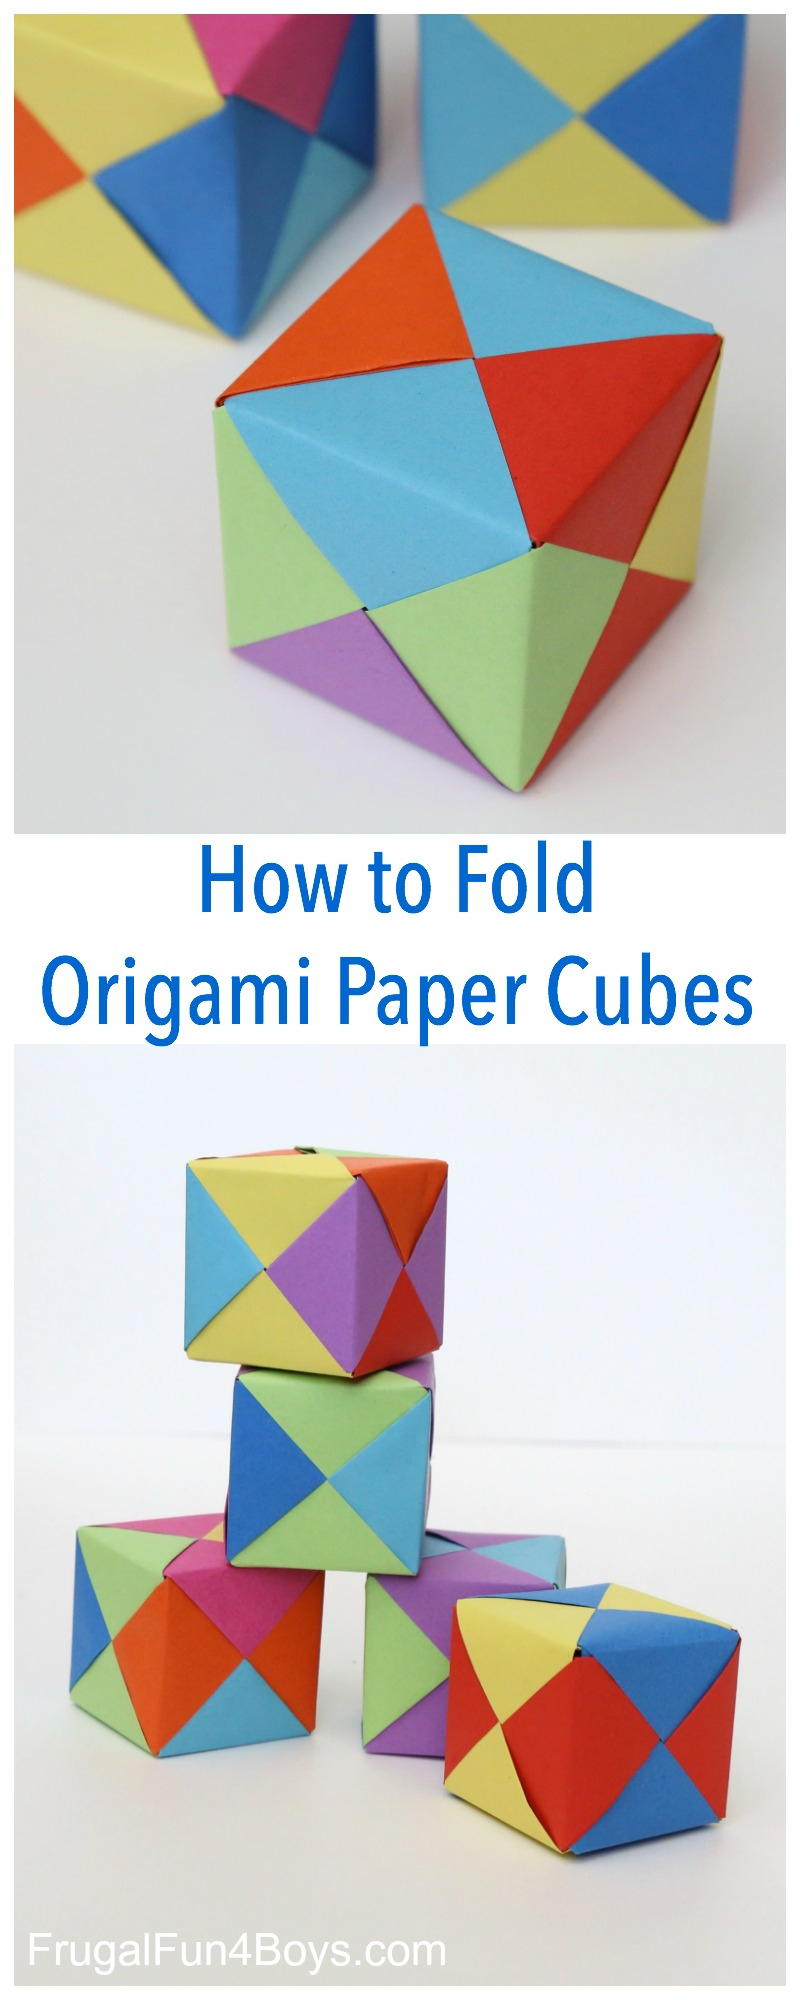 How To Fold Origami Paper Cubes - Frugal Fun For Boys And Girls - Printable Origami Instructions Free